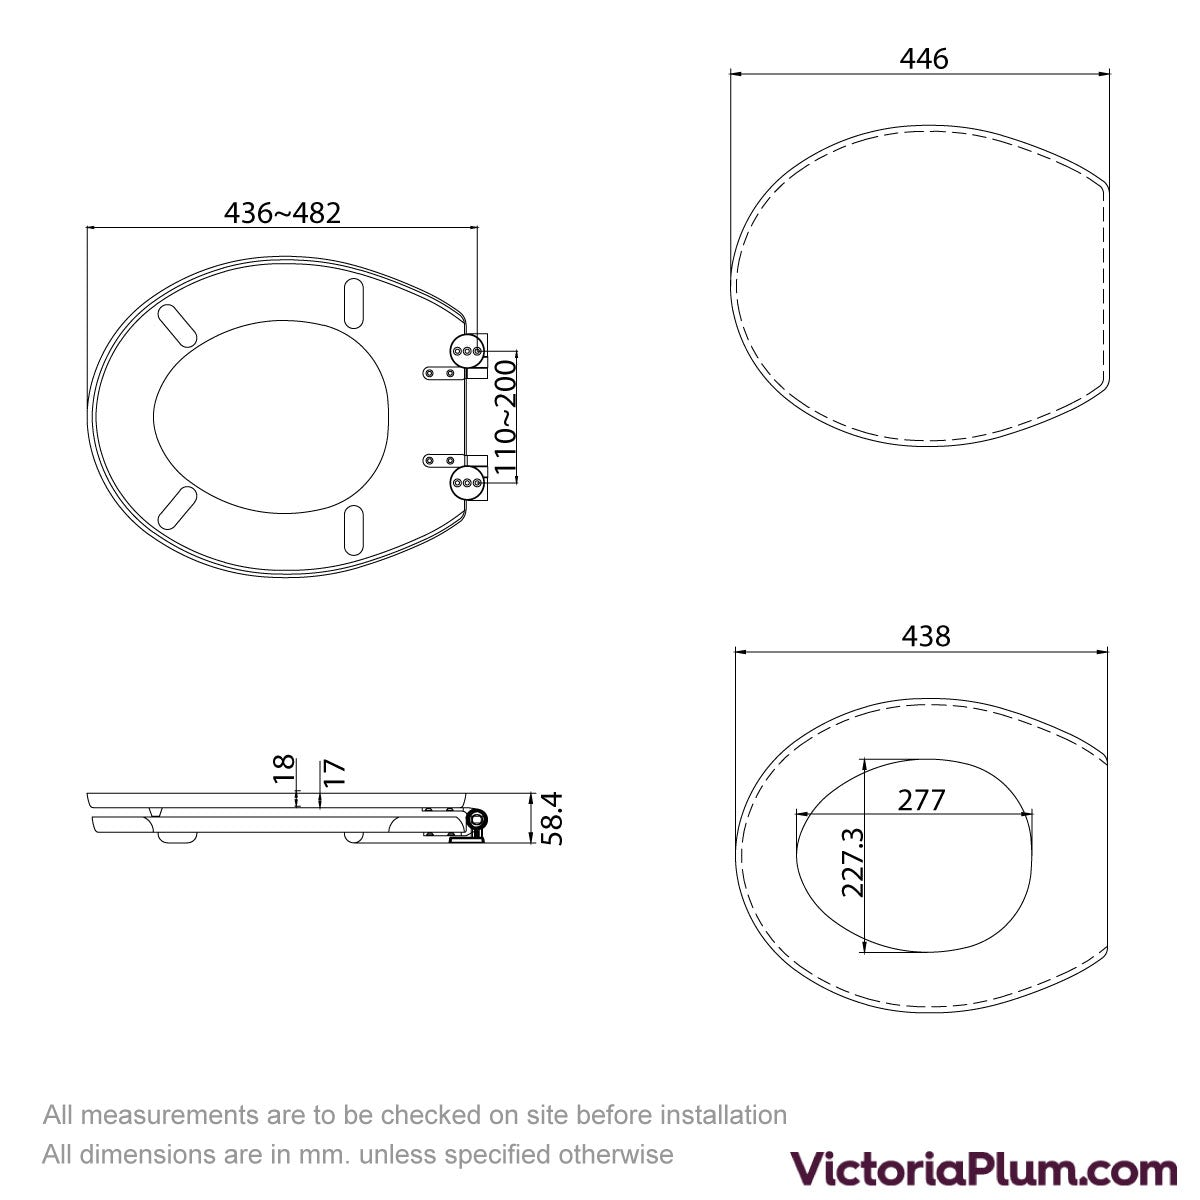 Dimensions for Blue stripe acrylic toilet seat with soft close quick release hinge